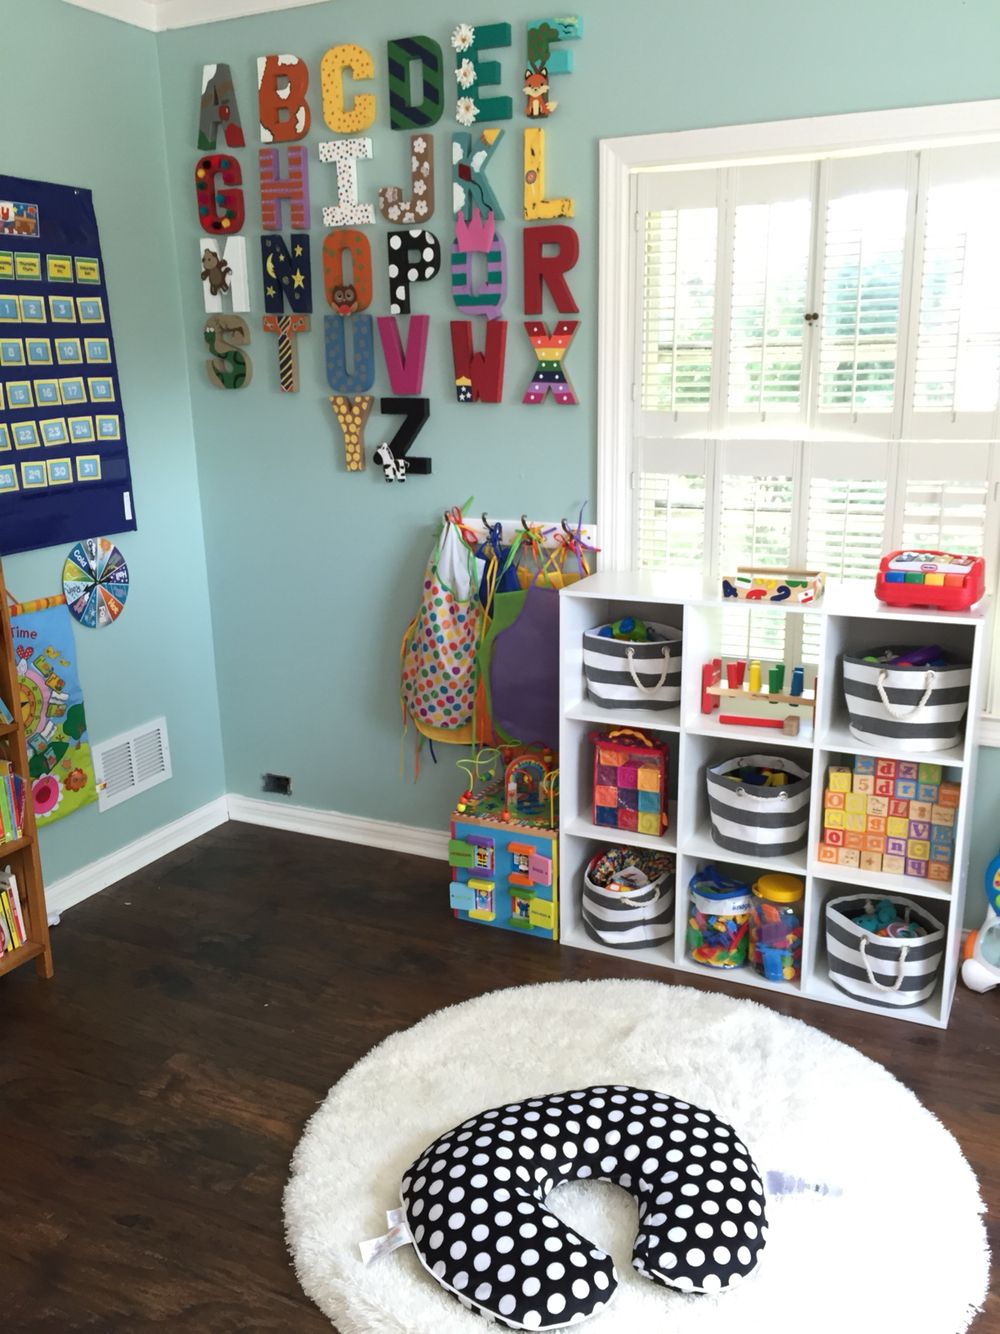 Daycare Decor Home Daycare: Daycare Rooms, Daycare Organization